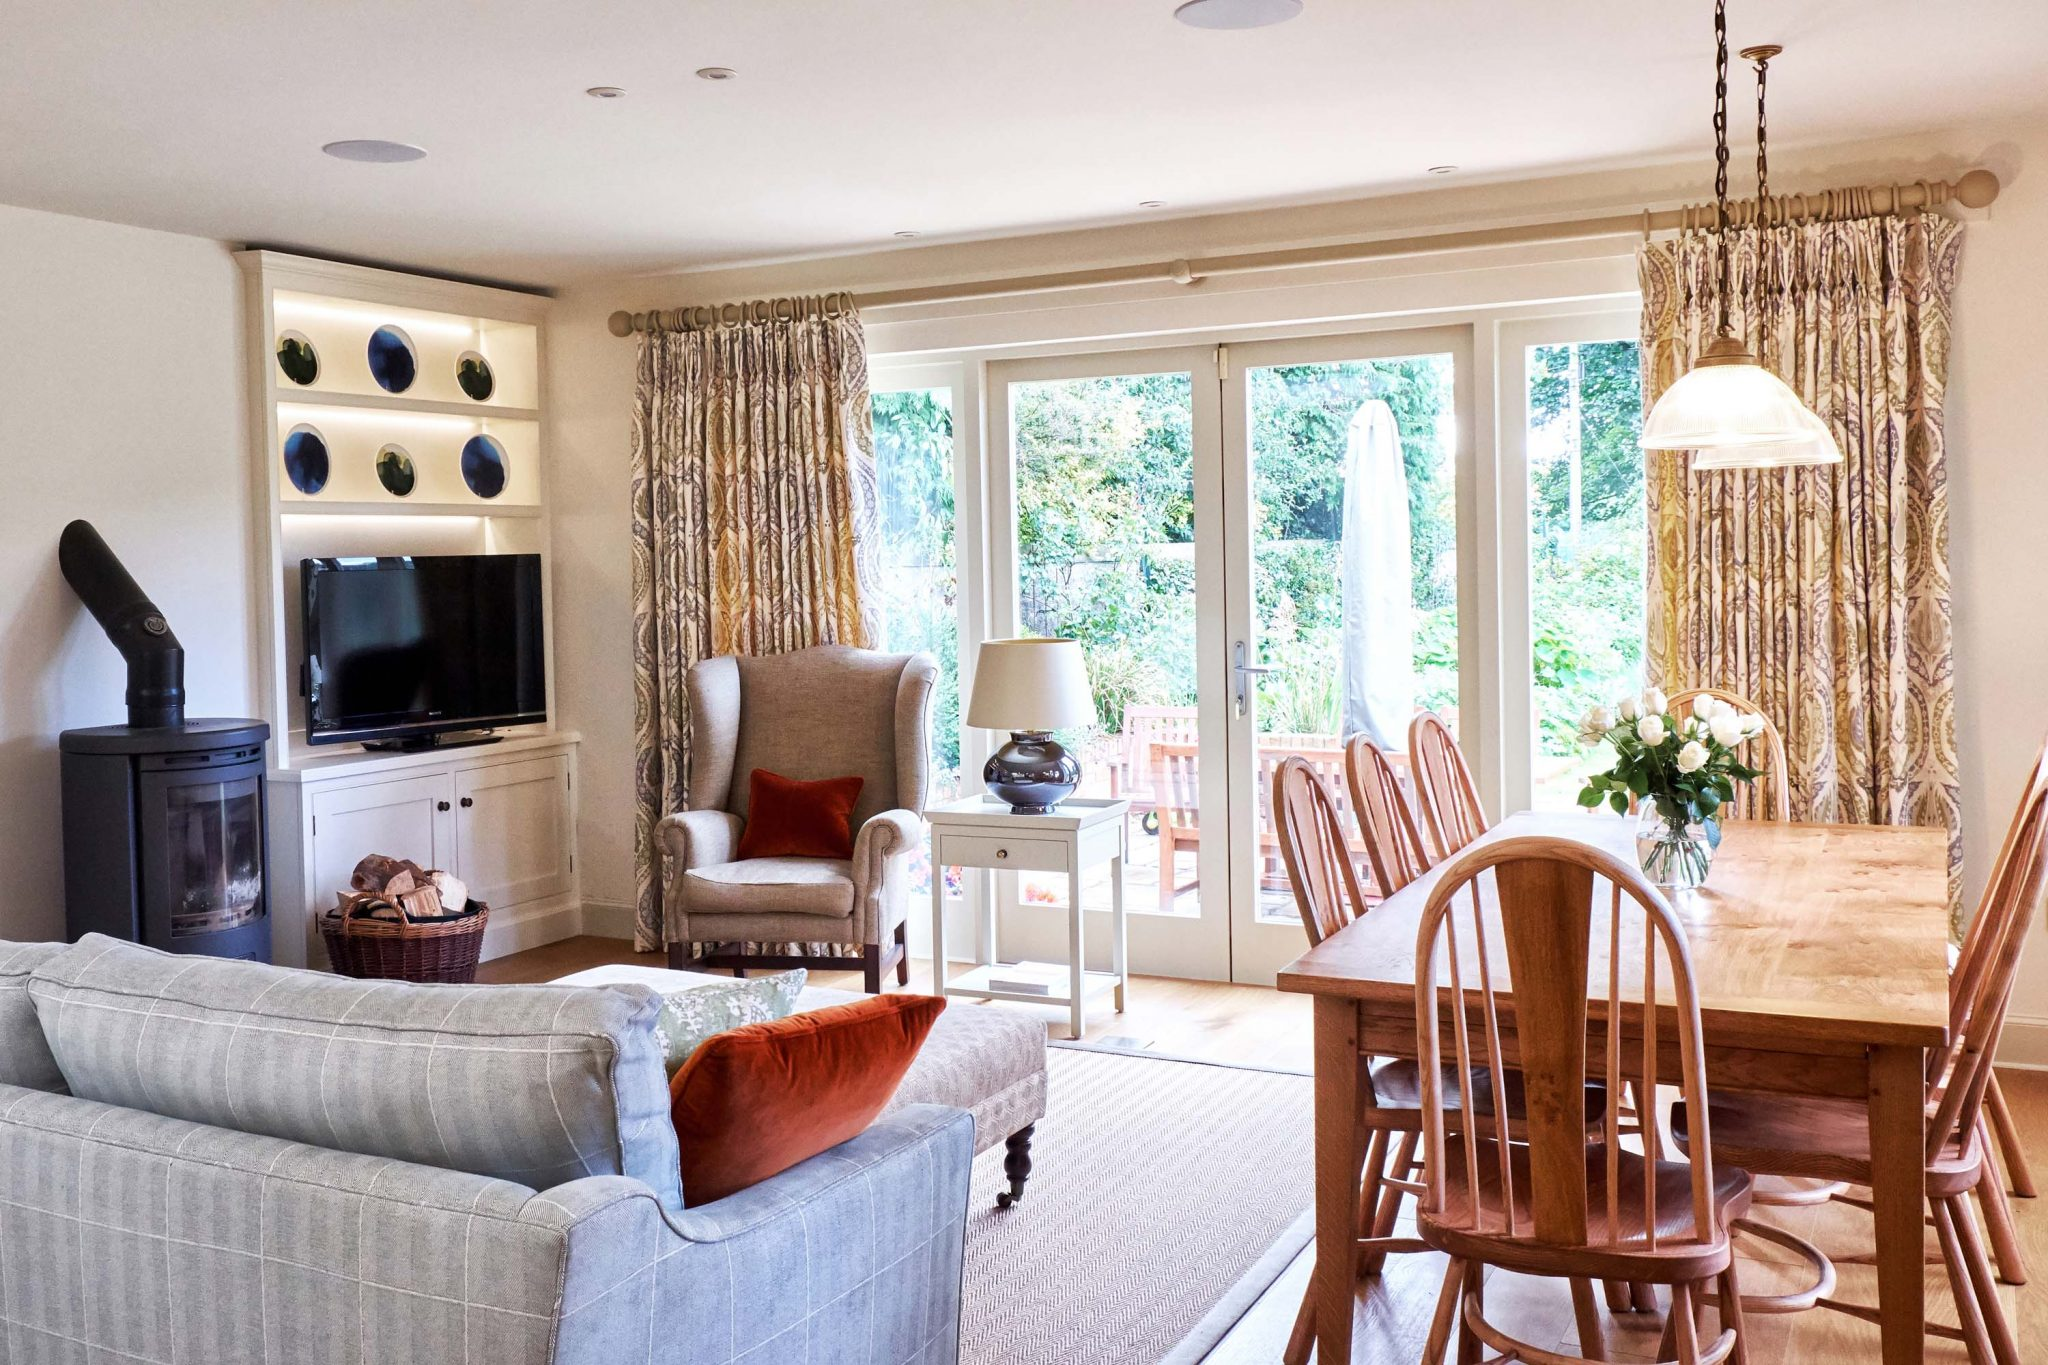 Joyous Day Soft Room Colours Are Really Interior Designers Scotland Robertson Lindsay Interiors Finished Room Has A Much Better Atmospheric Lighting Fordifferent Times interior Interior Design Living Room Photo